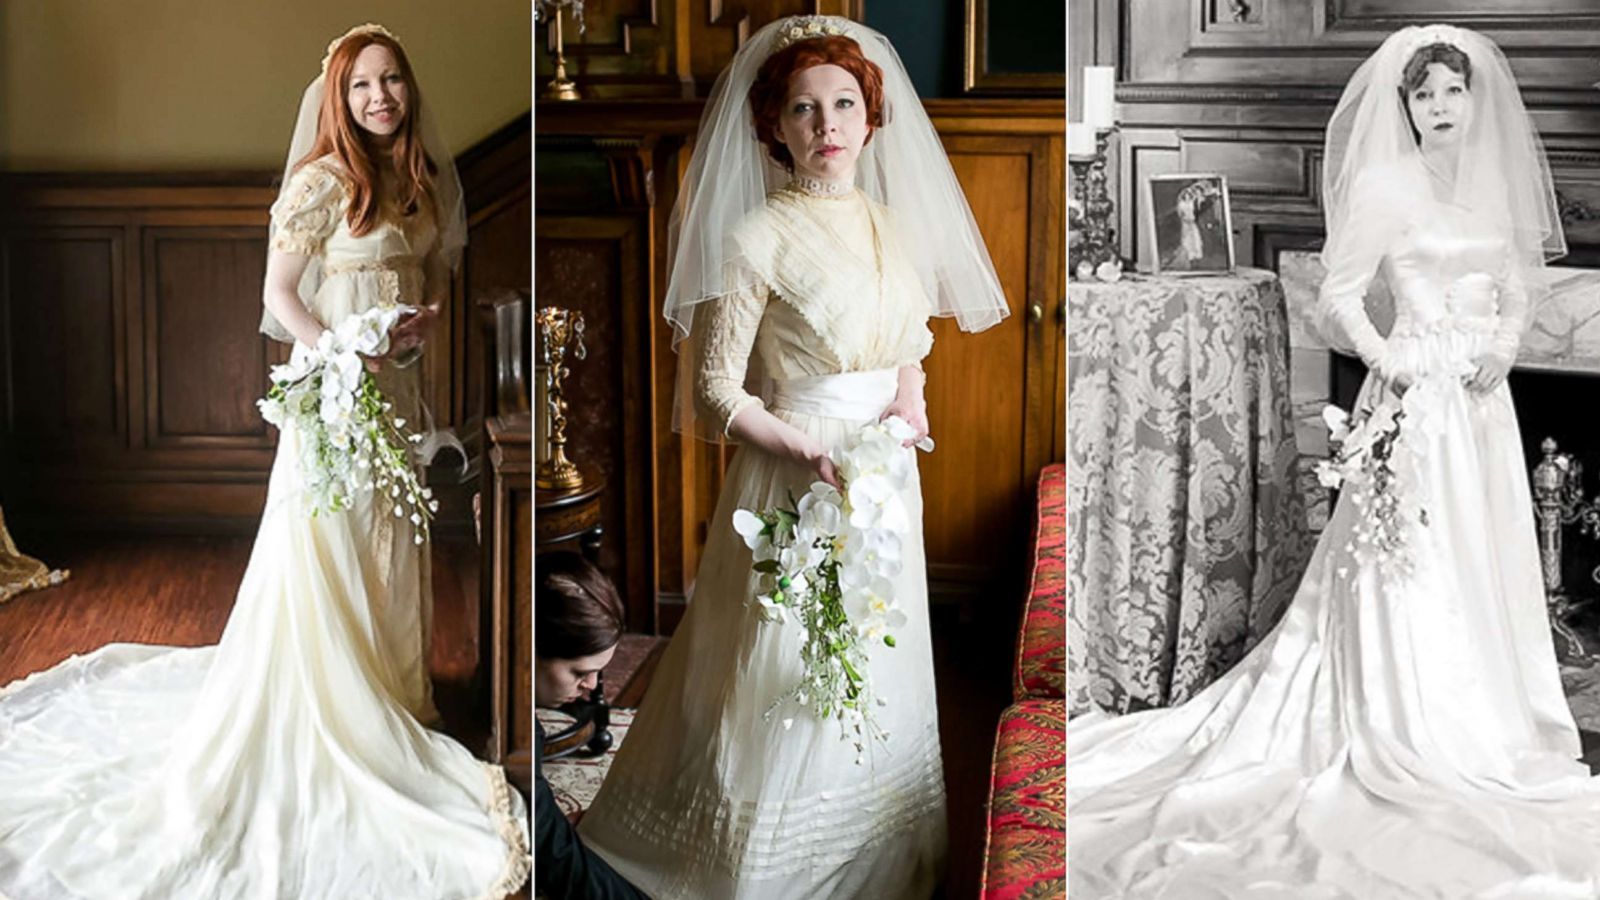 Bride Wears Great Grandmother S 1910 Wedding Dress In Special Photo Shoot Abc News